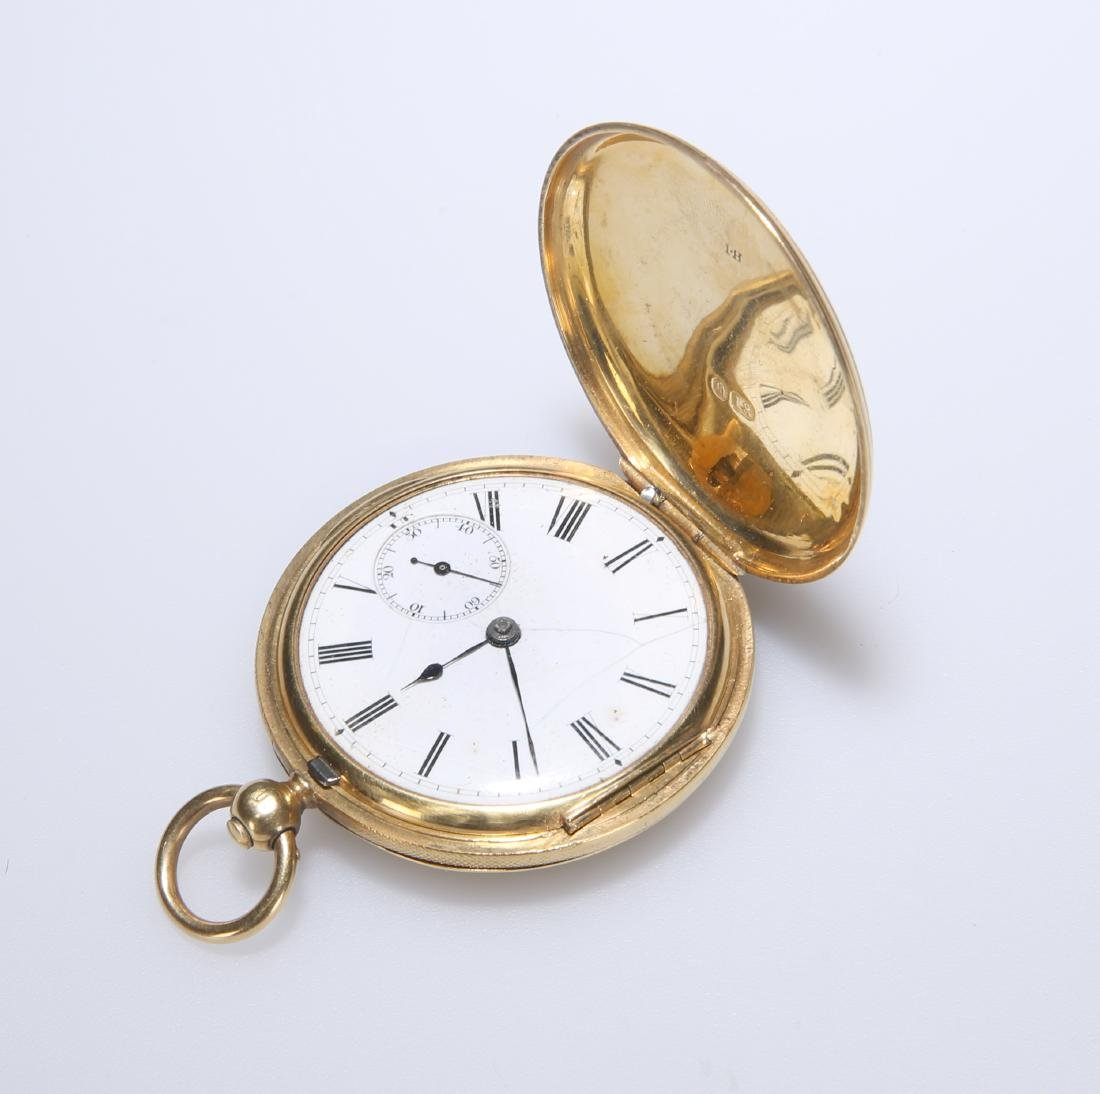 AN 18CT GOLD HUNTER DRESS POCKET WATCH. Circular white